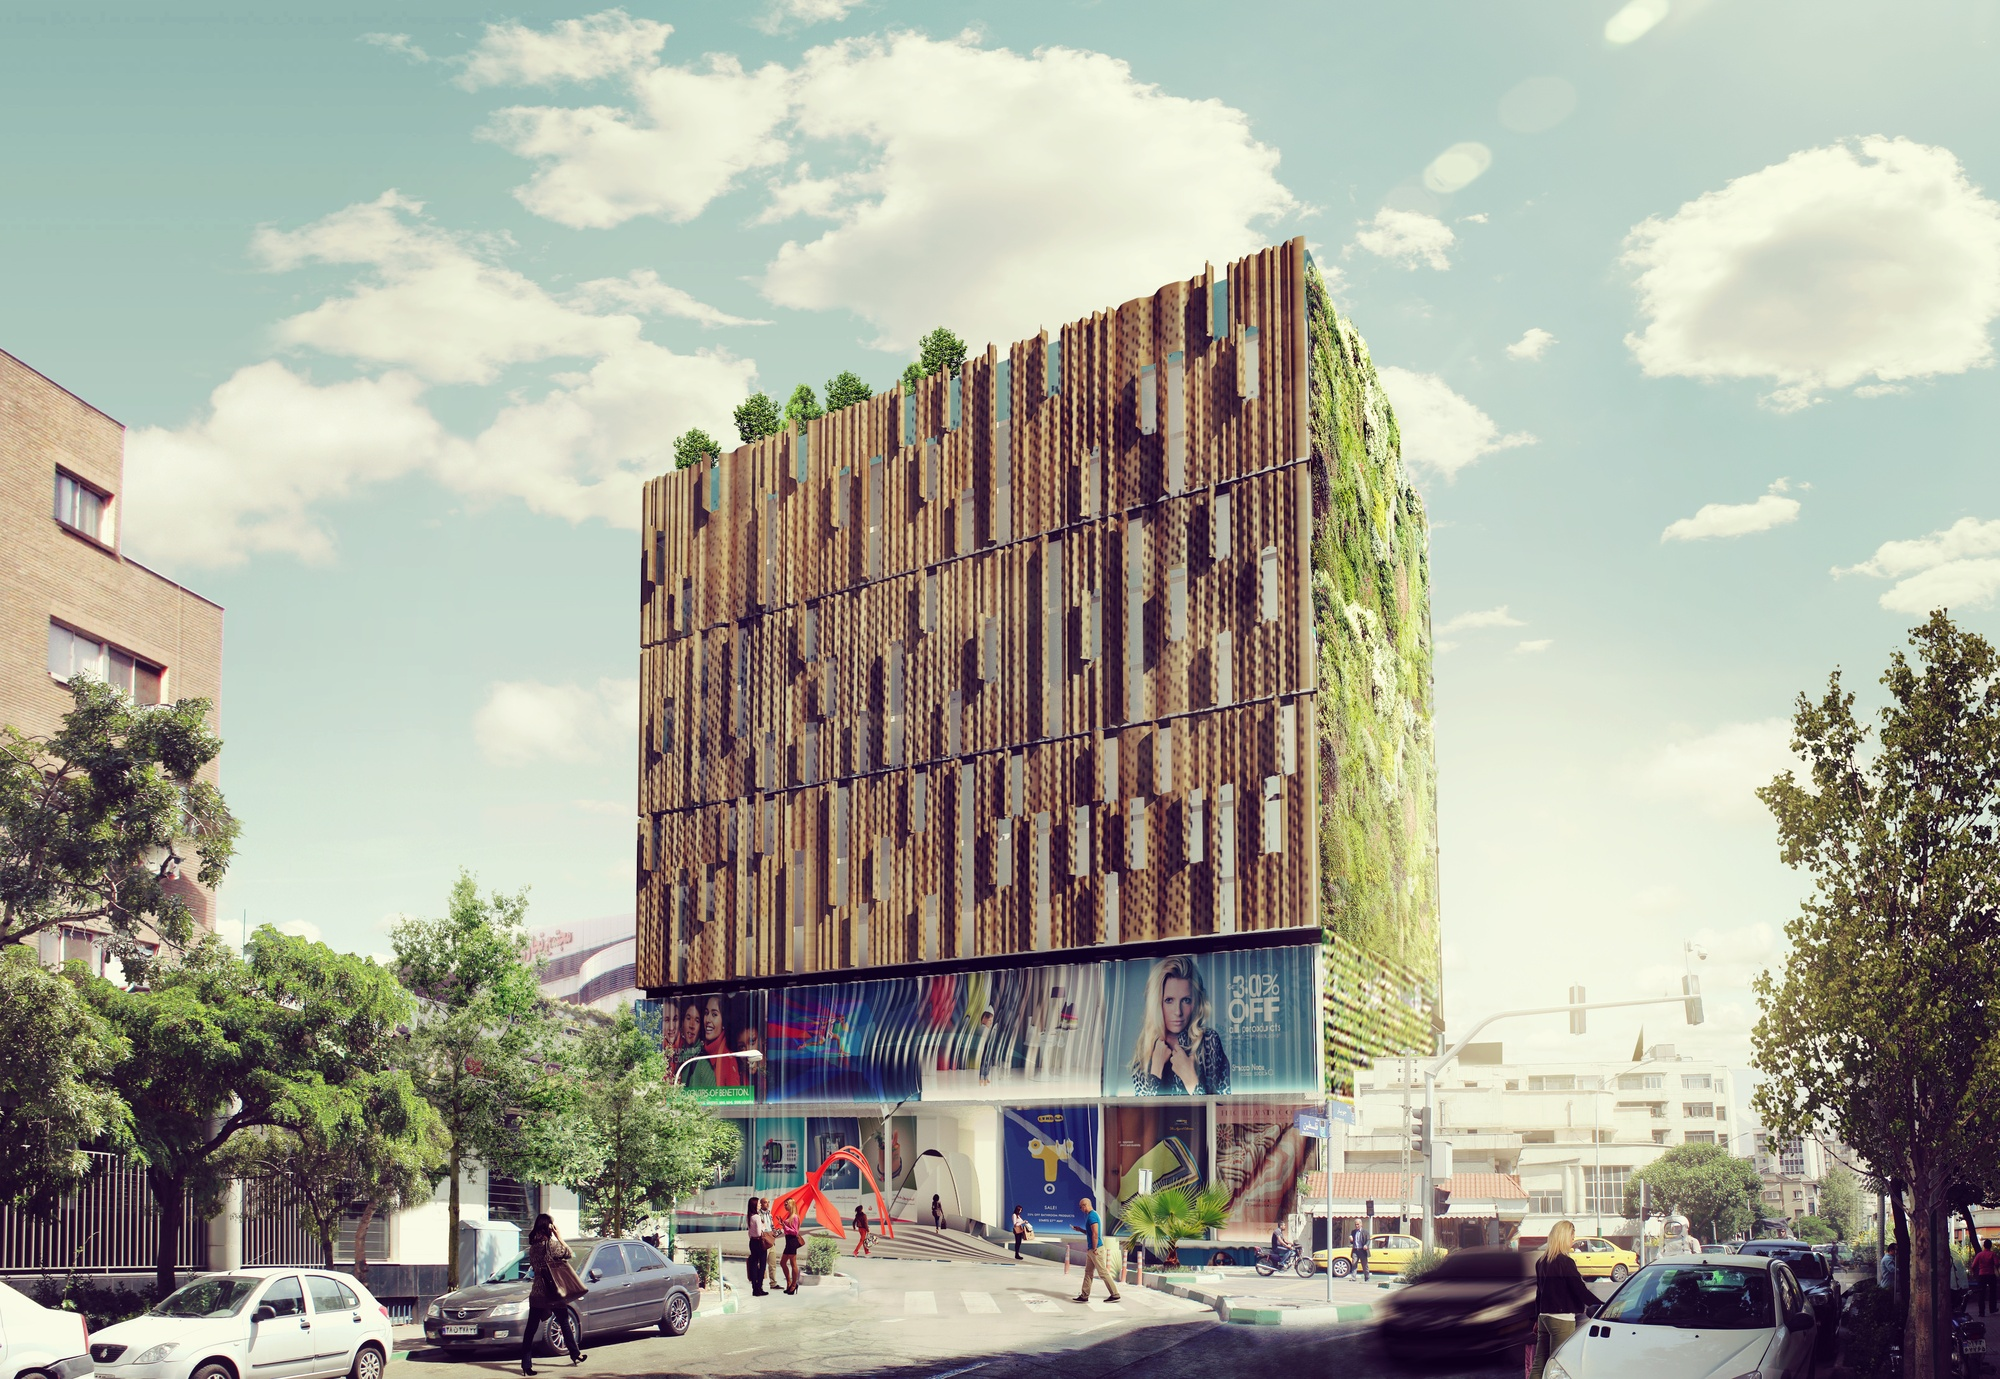 Kamvari architects design mixed use development for tehran for Construction architect